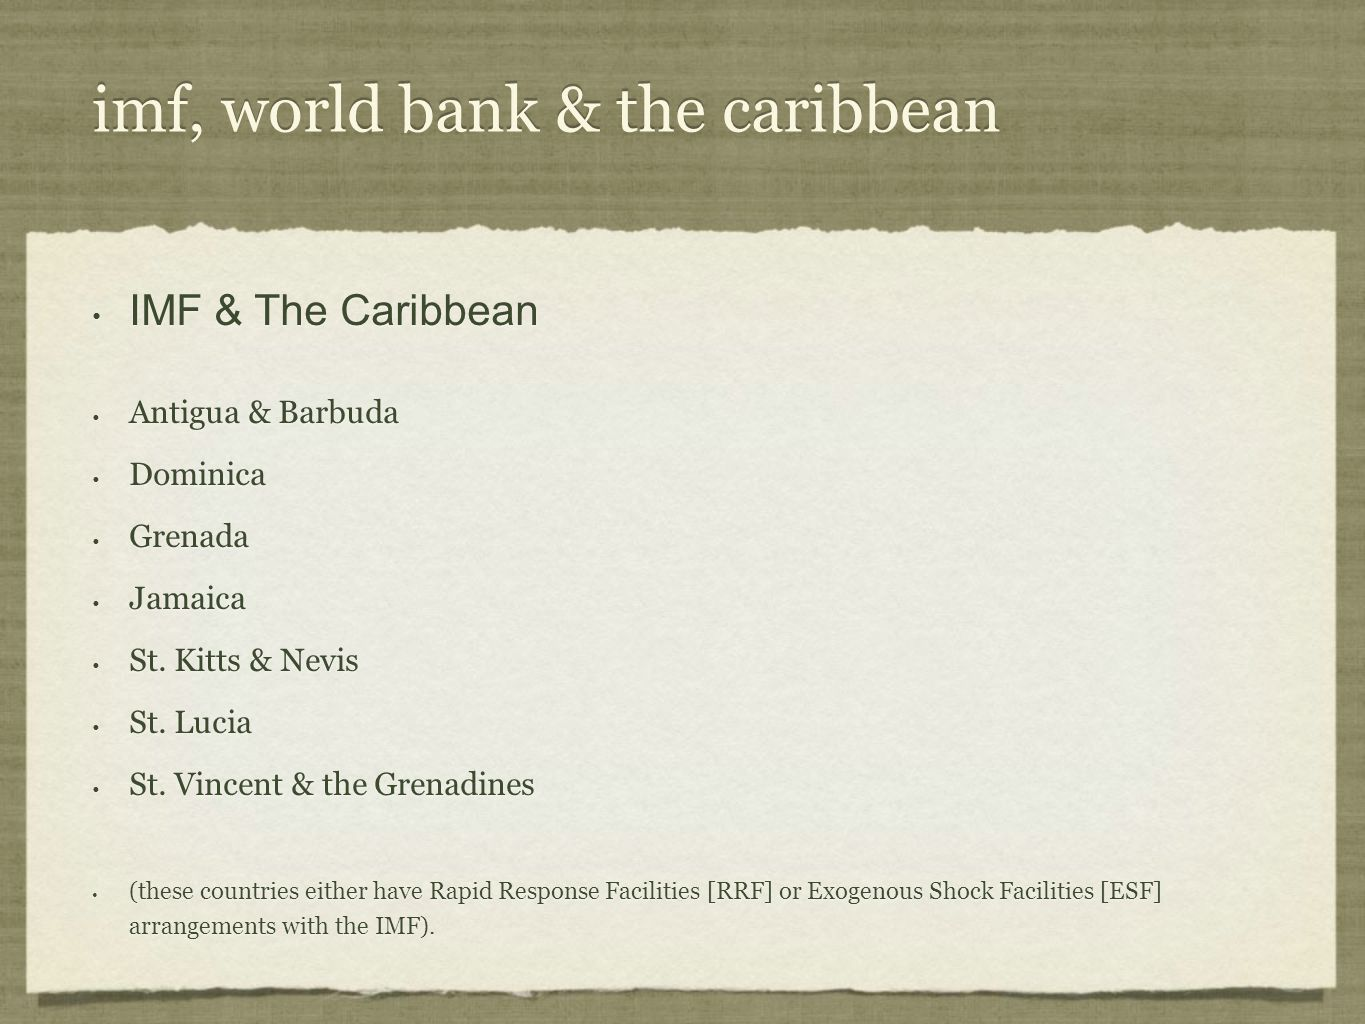 imf, world bank & the caribbean